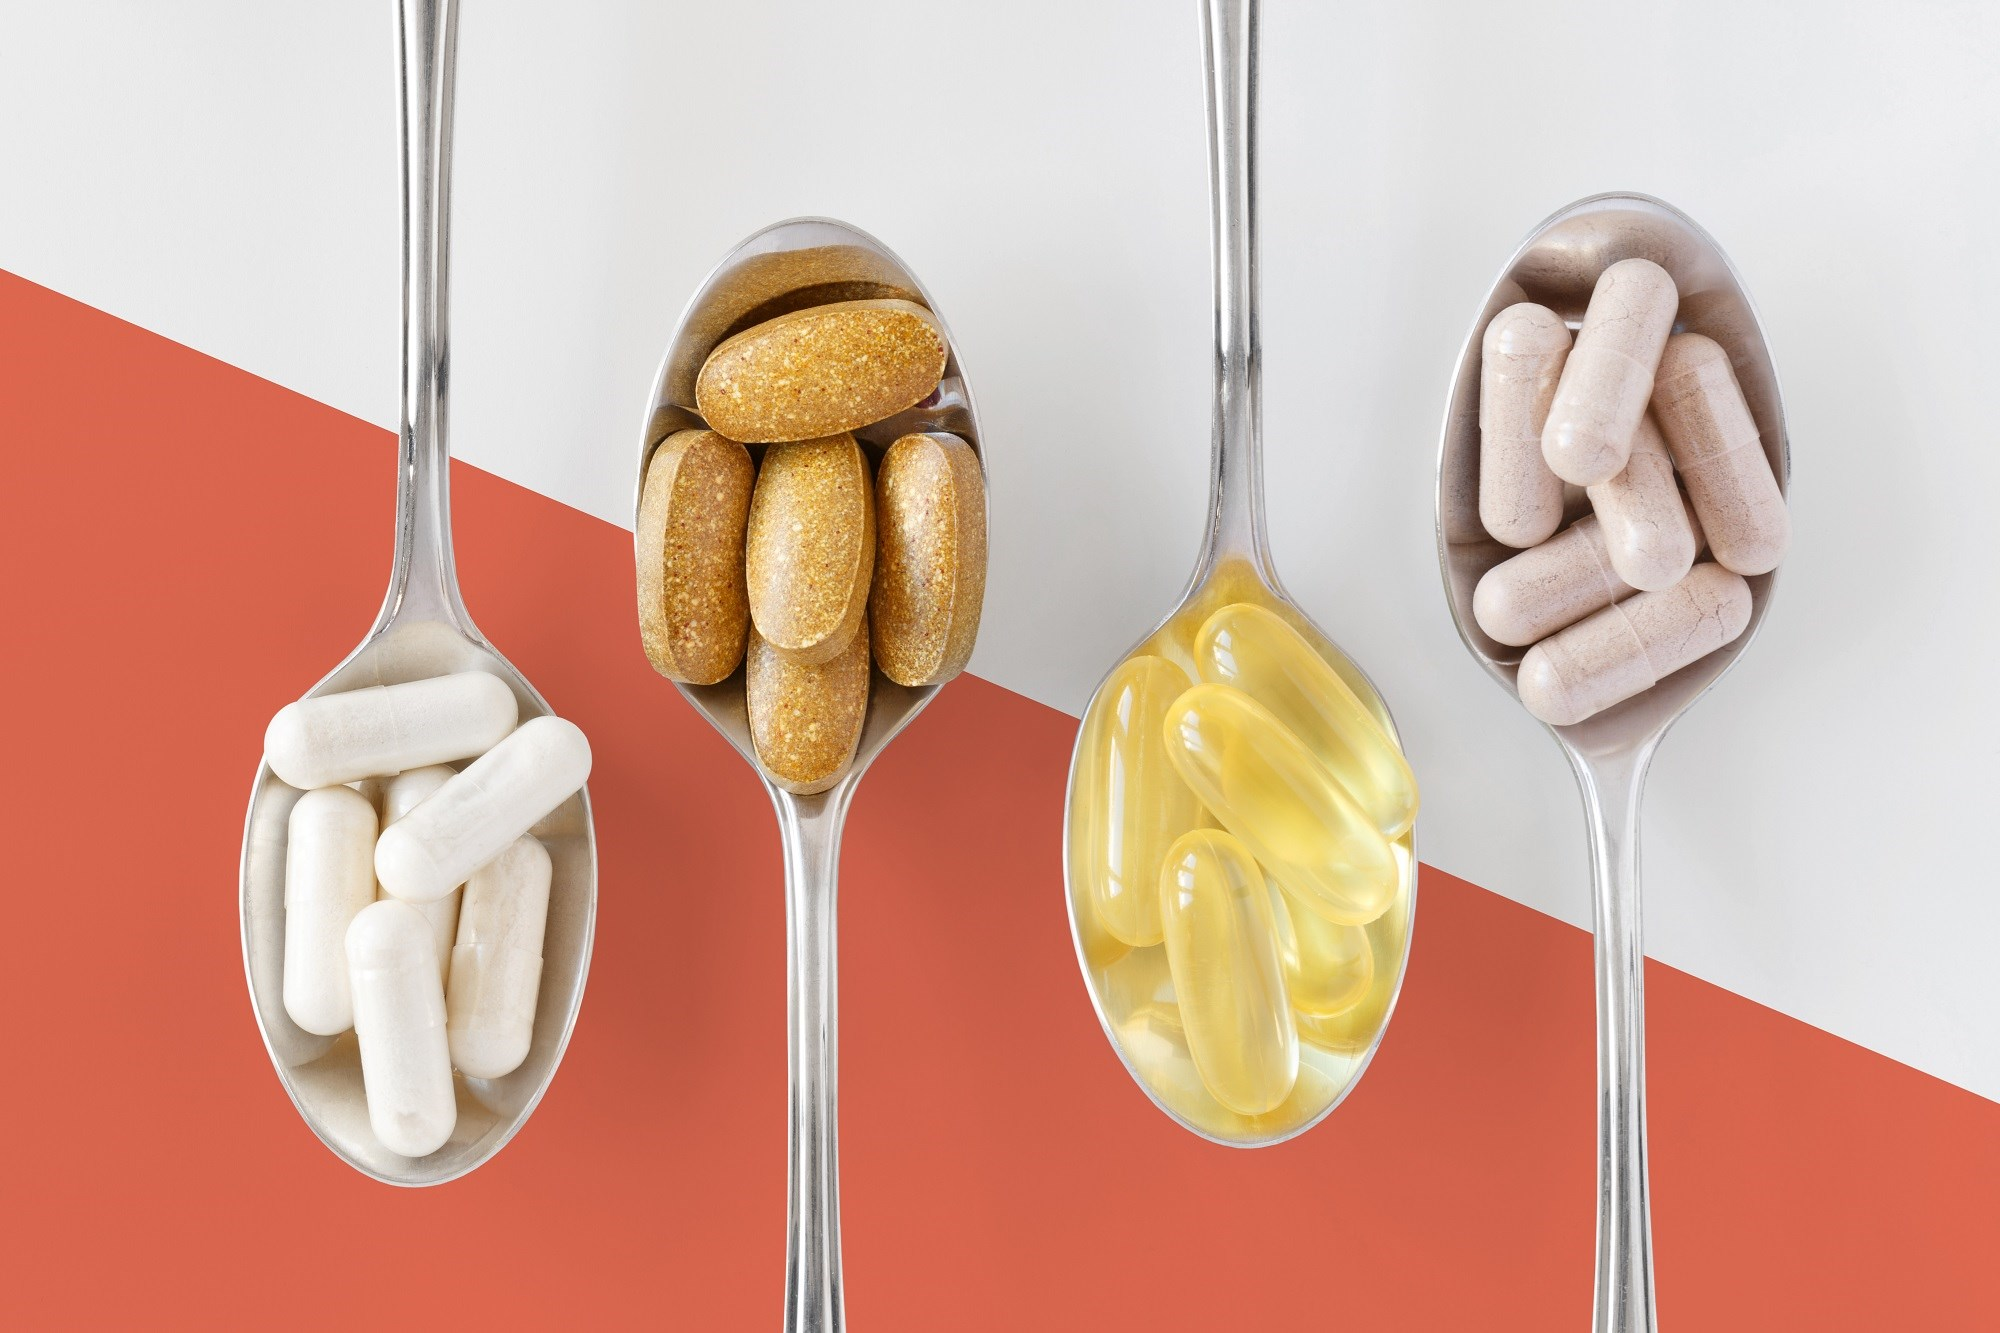 In 2015, Americans spent $21 billion dollars on vitamins and herbal supplements, and approximately half of US adults take a supplement of some kind.